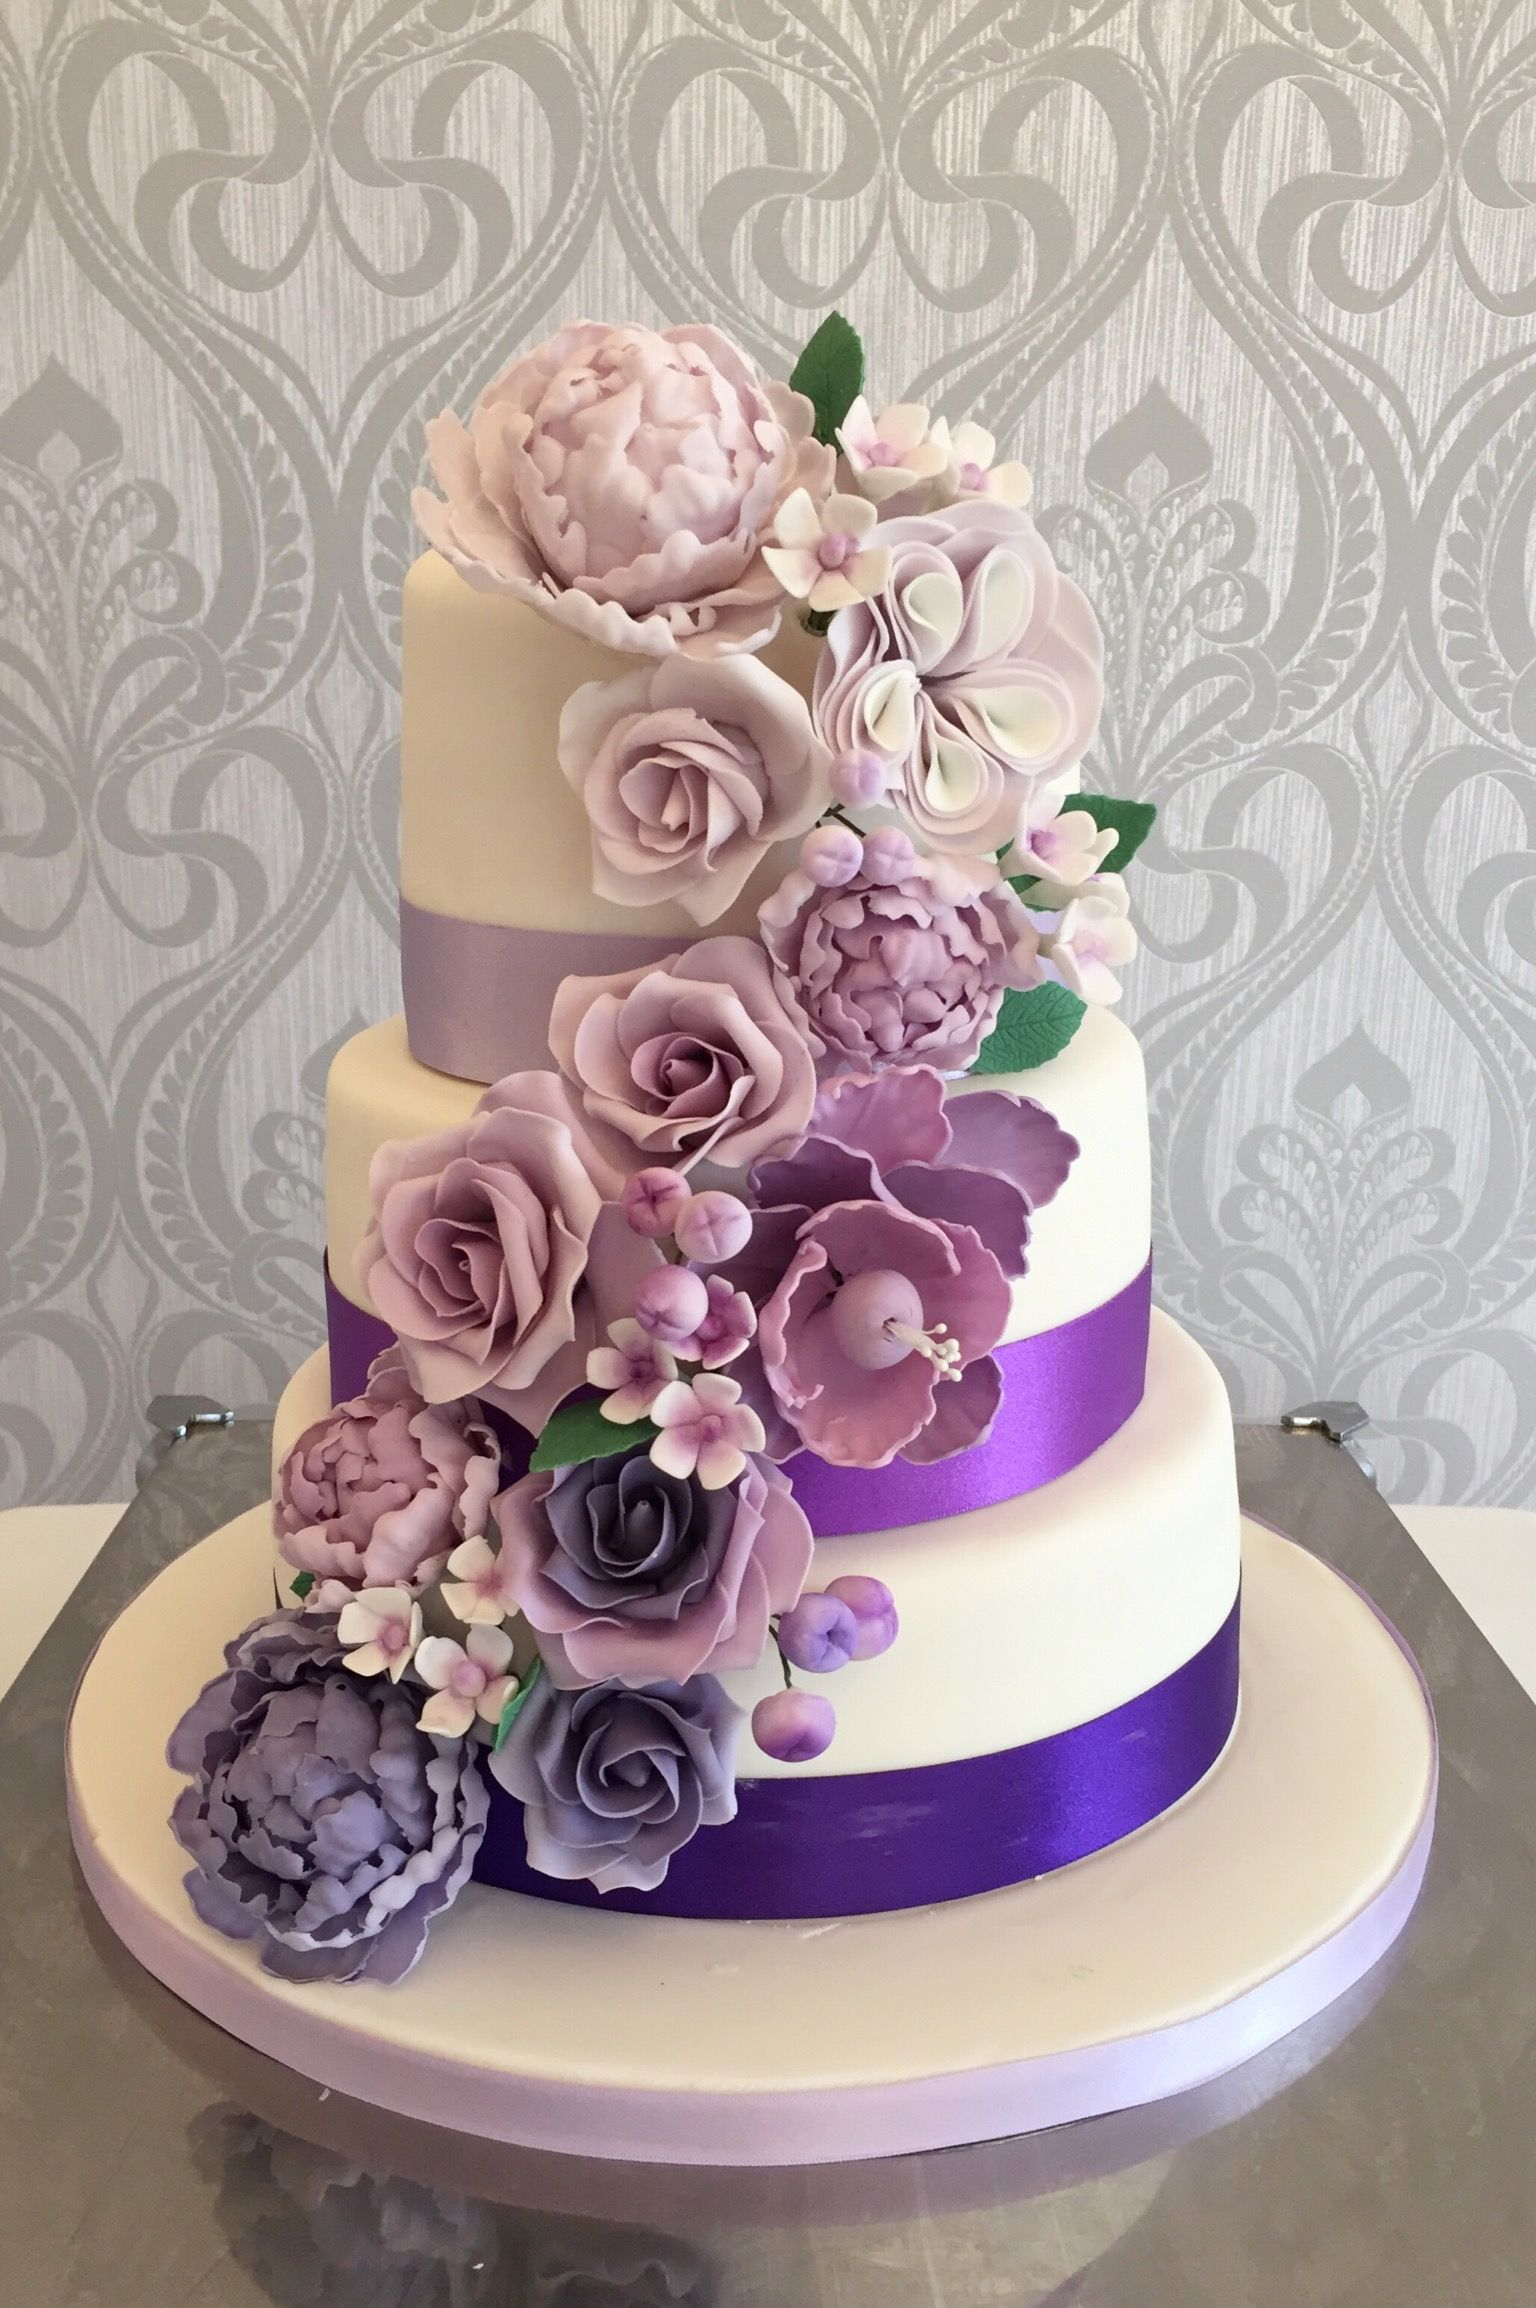 Wedding Cake 3 Tier White Wedding Cake With A Stunning Full